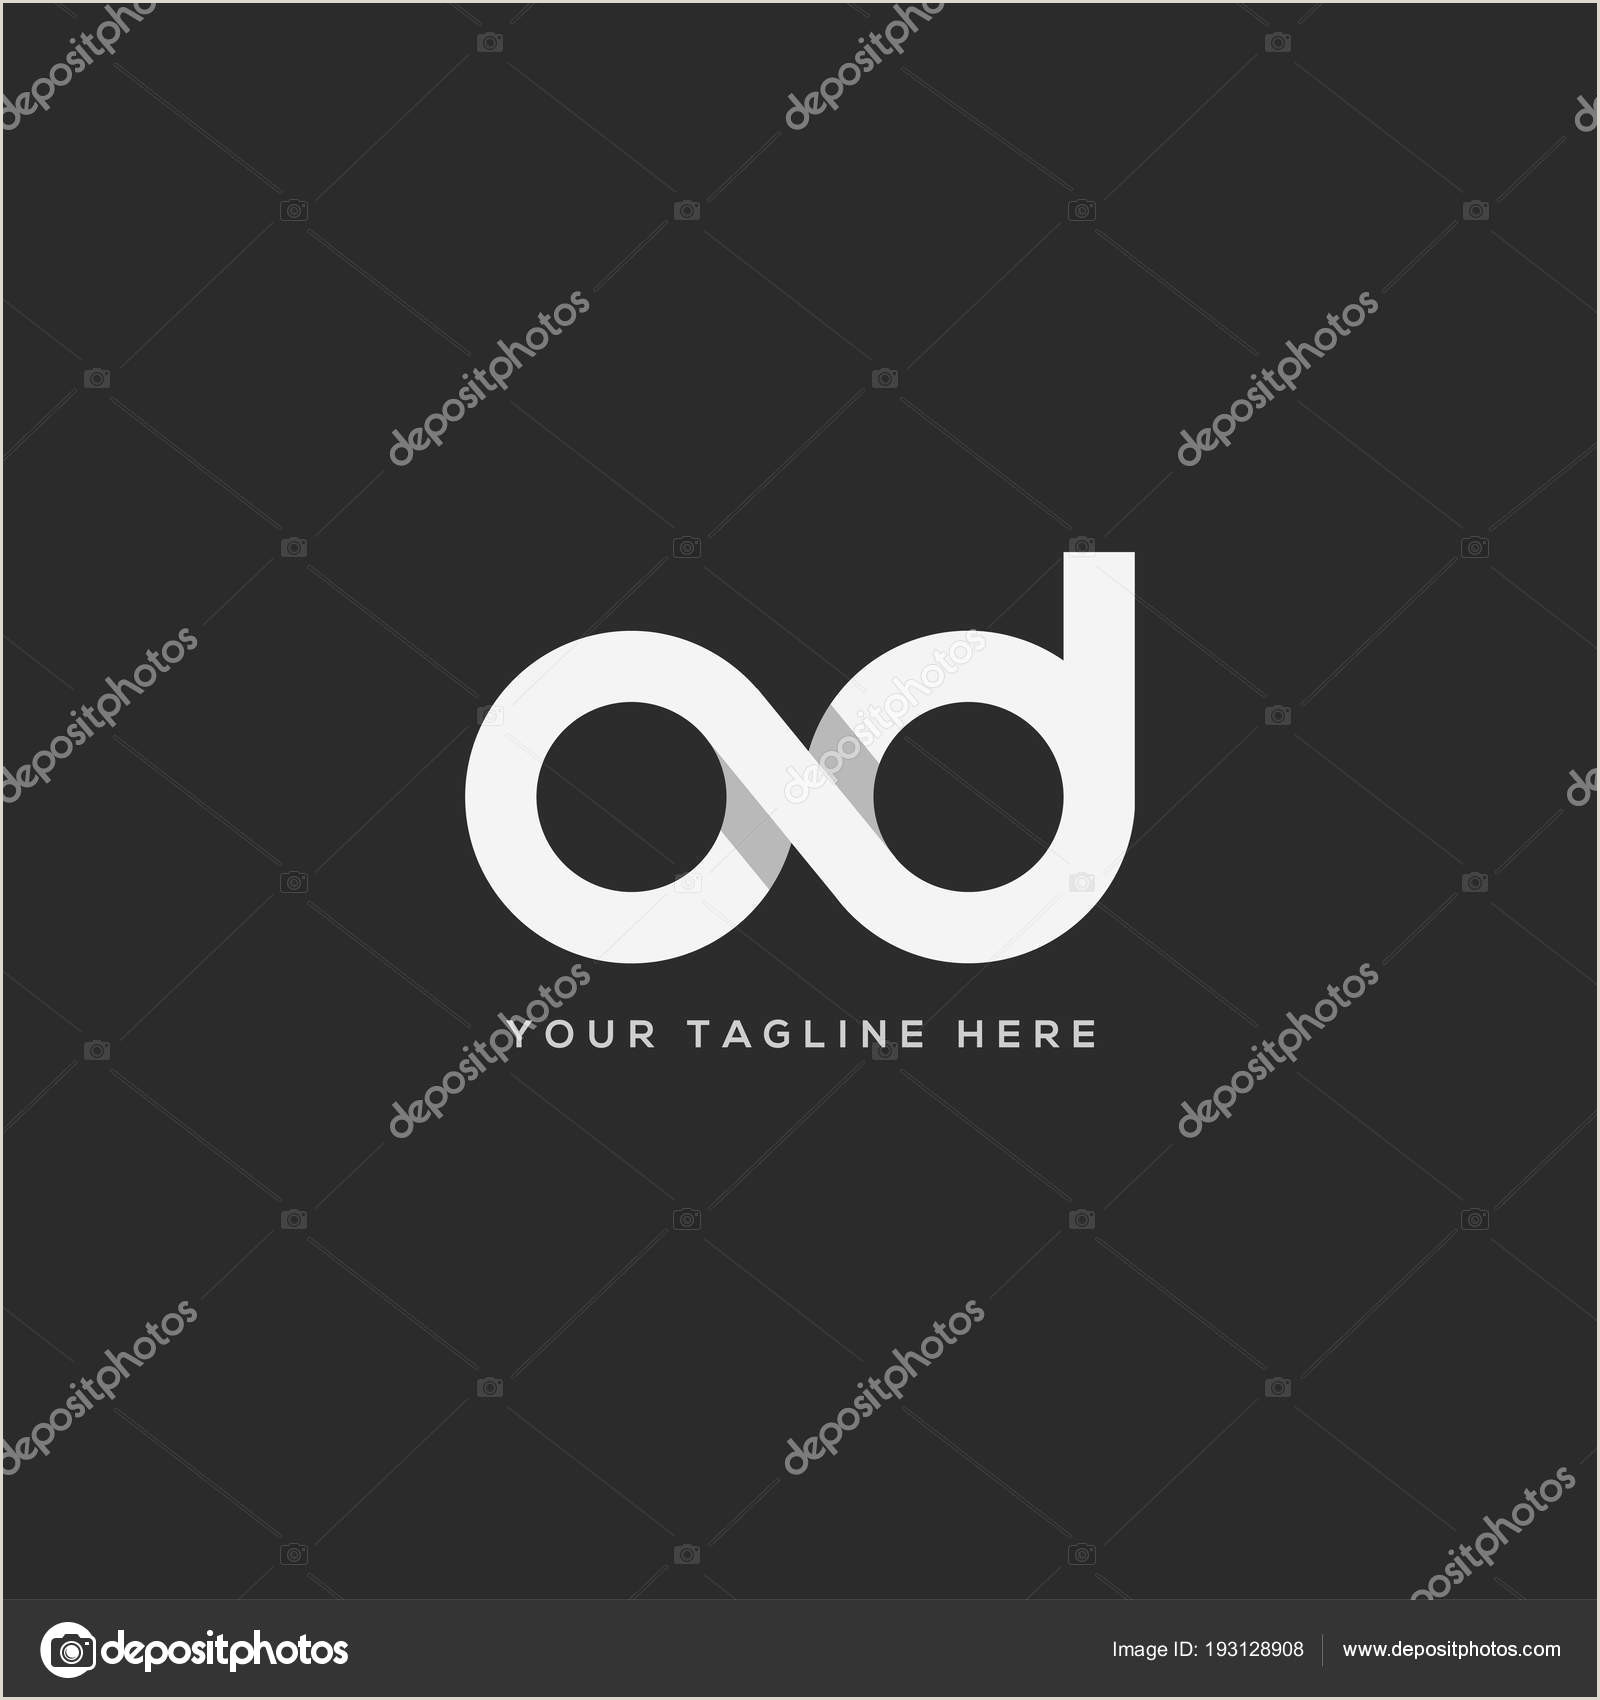 Cool Buisness Card Designs Letters Logo Template Buisness Card — Stock Vector